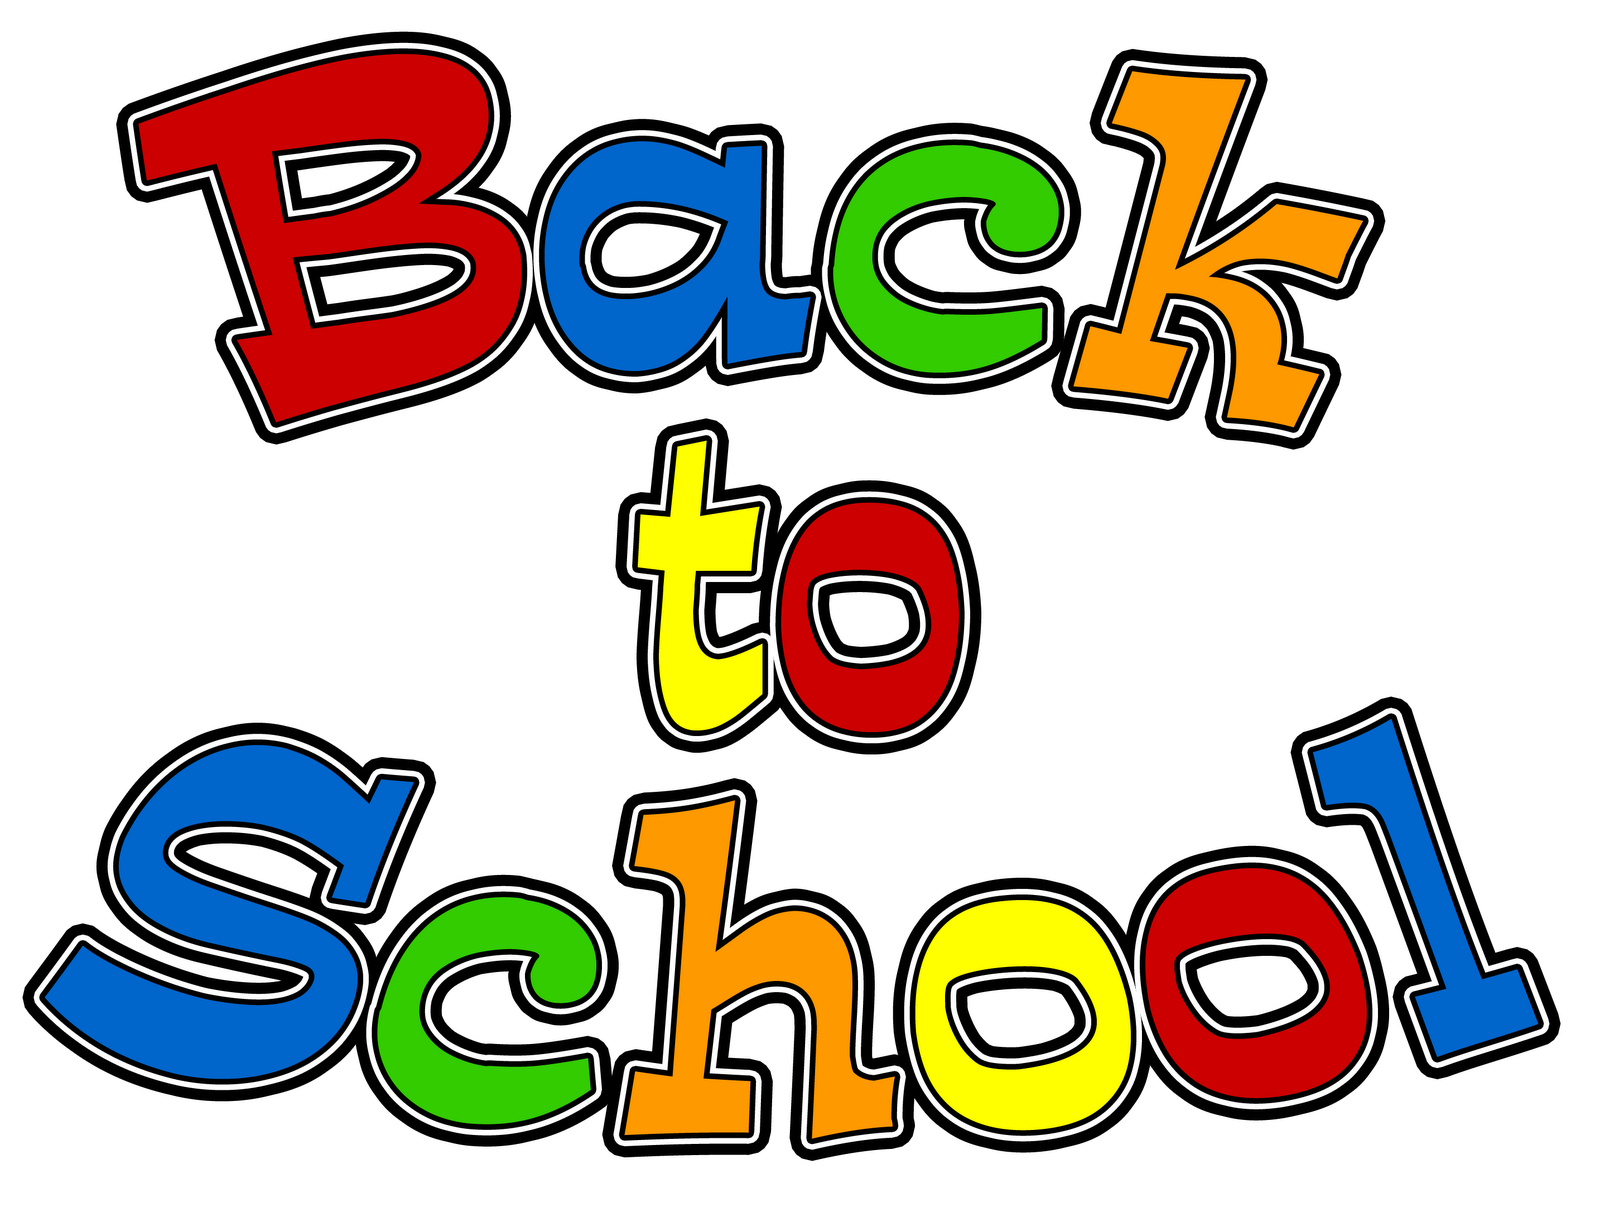 Back To School School Clipart Education -Back to school school clipart education clip art school clip art 2-6